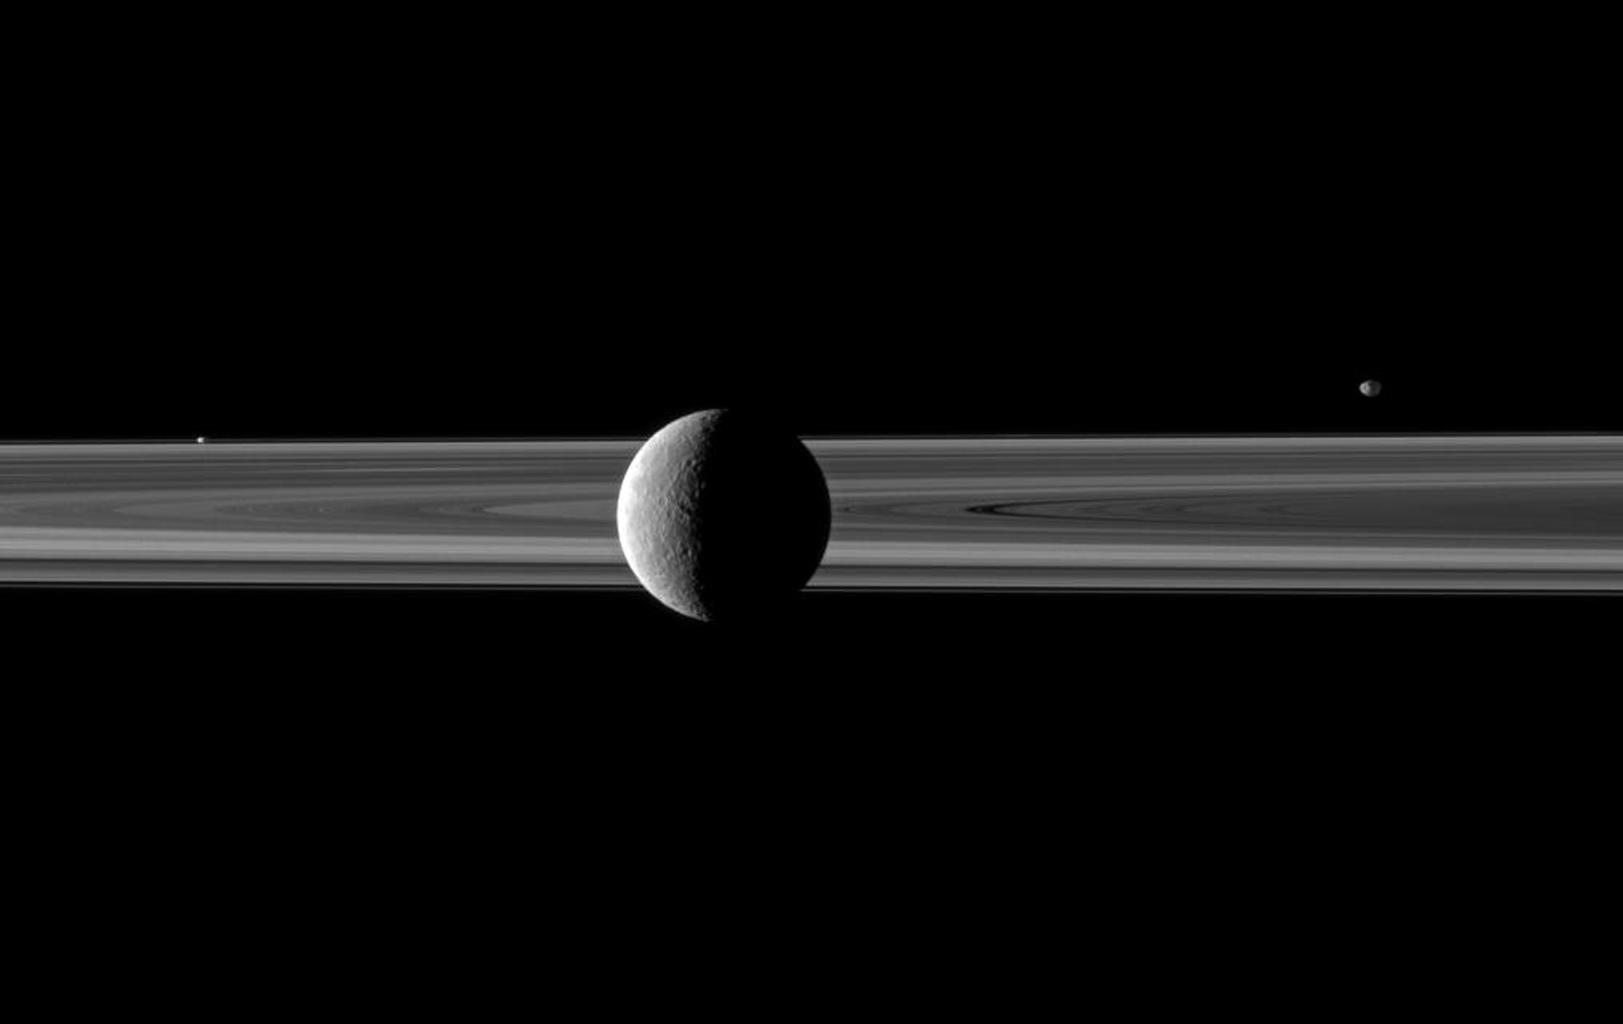 A pair of small moons join Saturn's second largest moon in this NASA Cassini spacecraft image spotlighting Rhea in front of the rings. Janus is seen beyond the rings on the right and Prometheus is visible between the main rings and thin F ring on left.